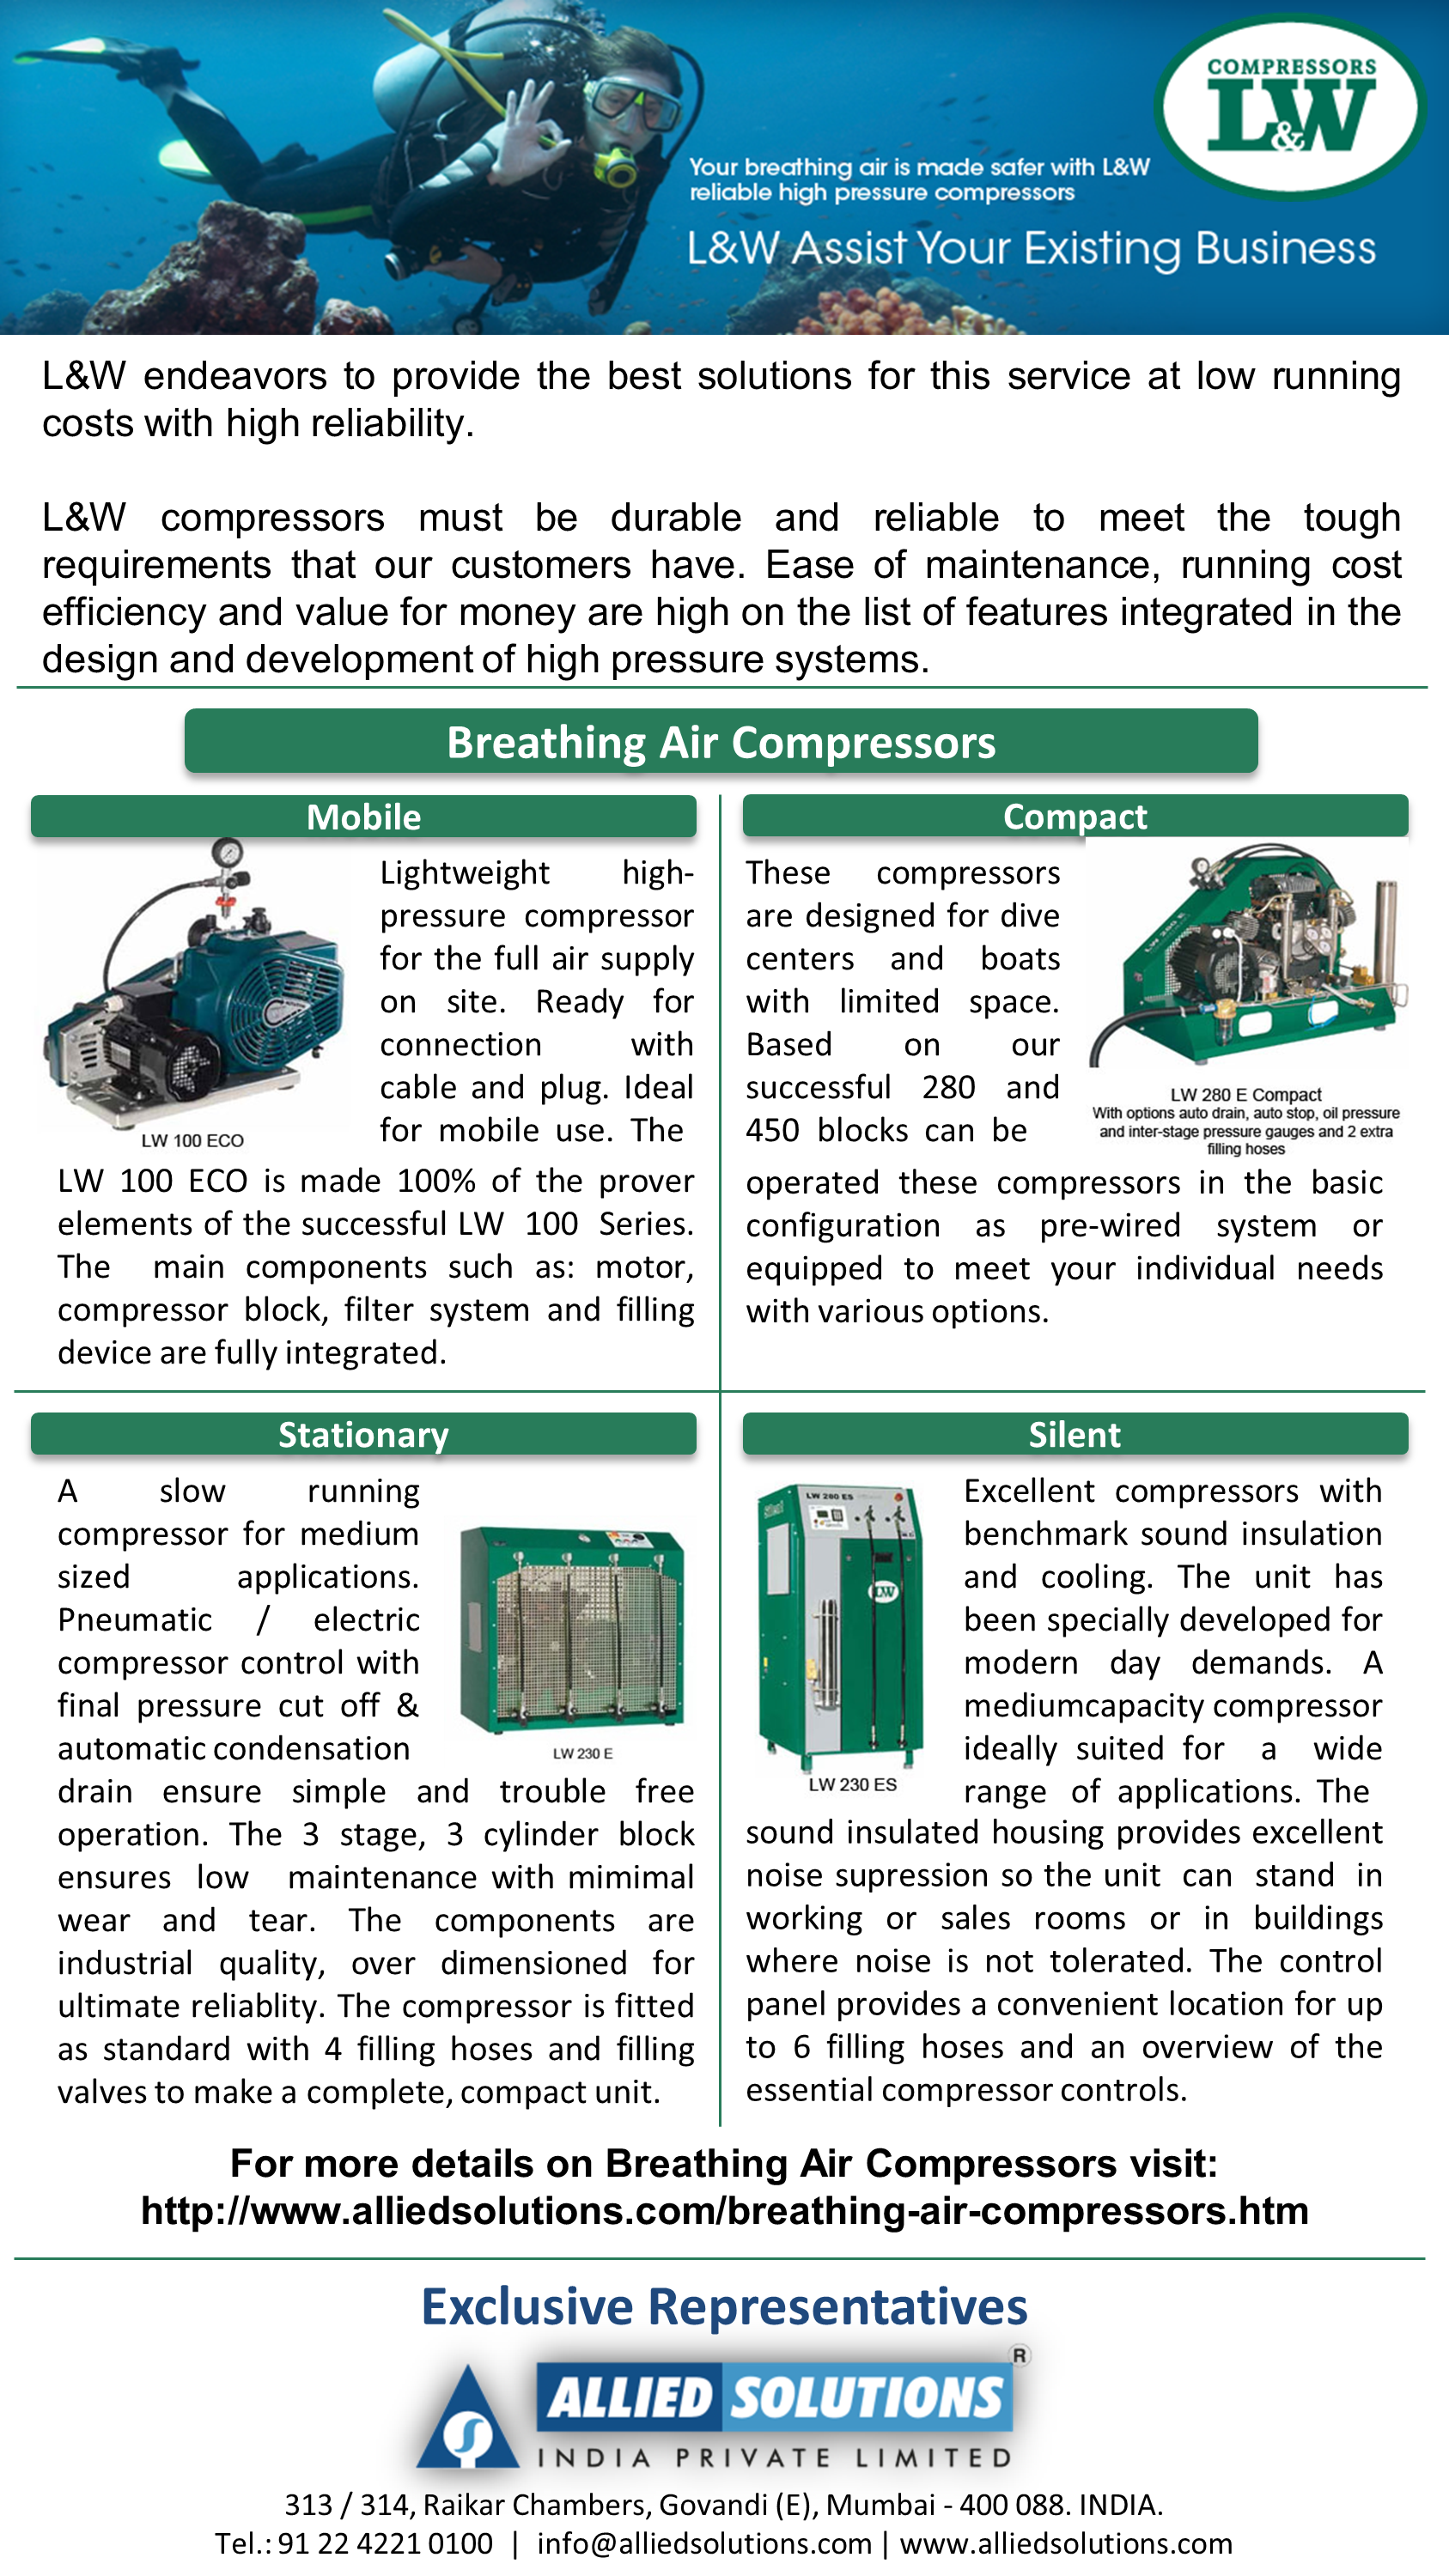 L&W Breathing Air Compressors Allied Solutions India